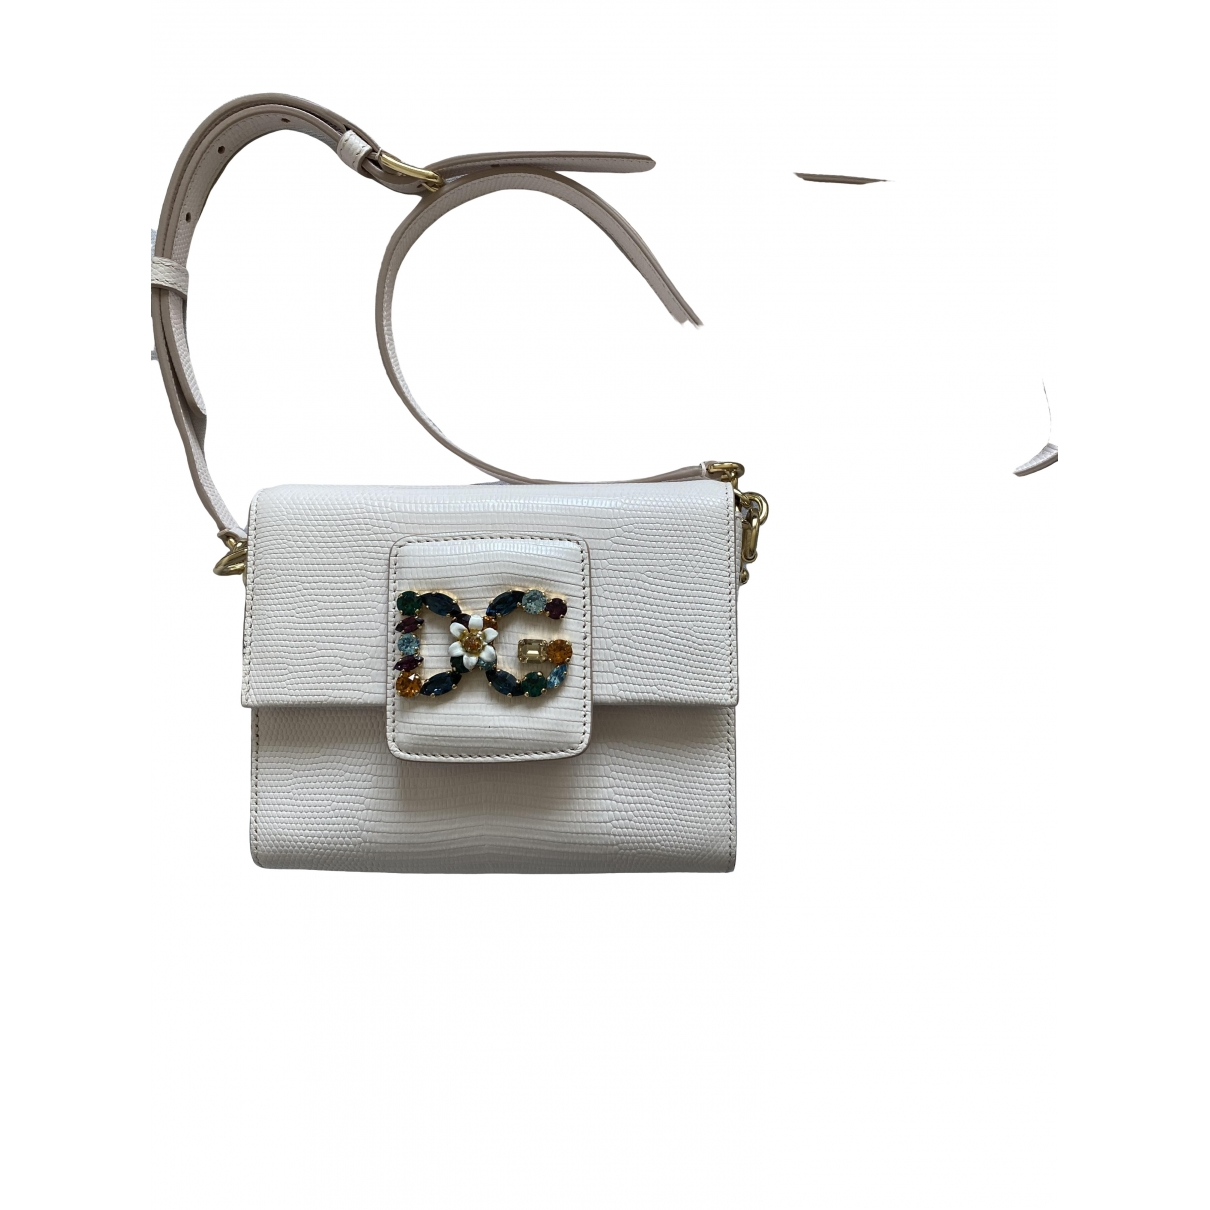 D&g \N Ecru Leather handbag for Women \N